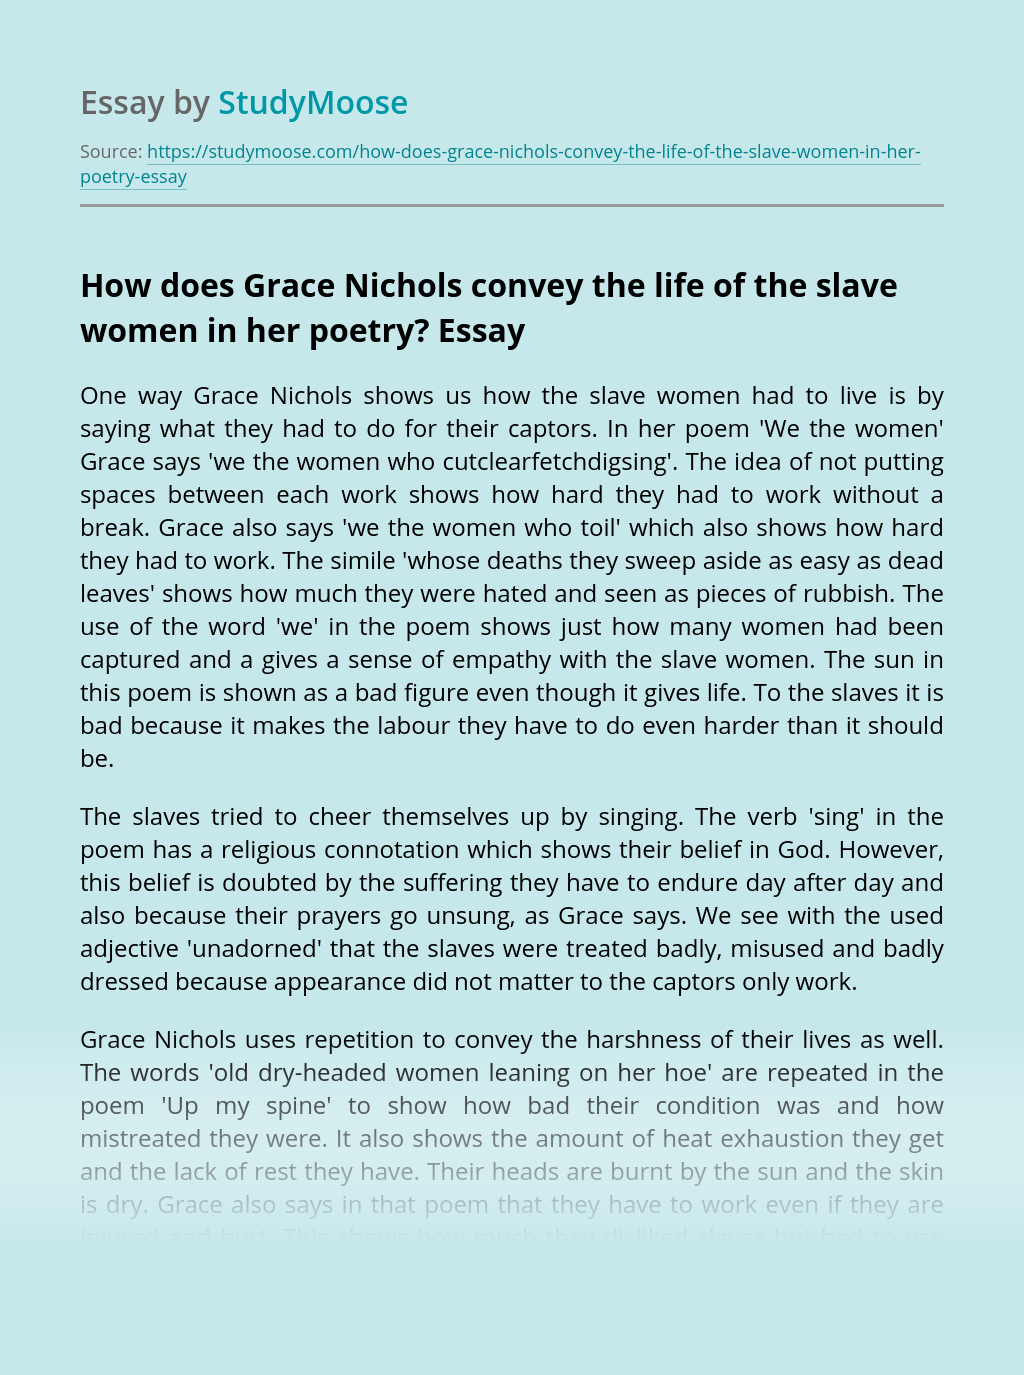 How does Grace Nichols convey the life of the slave women in her poetry?